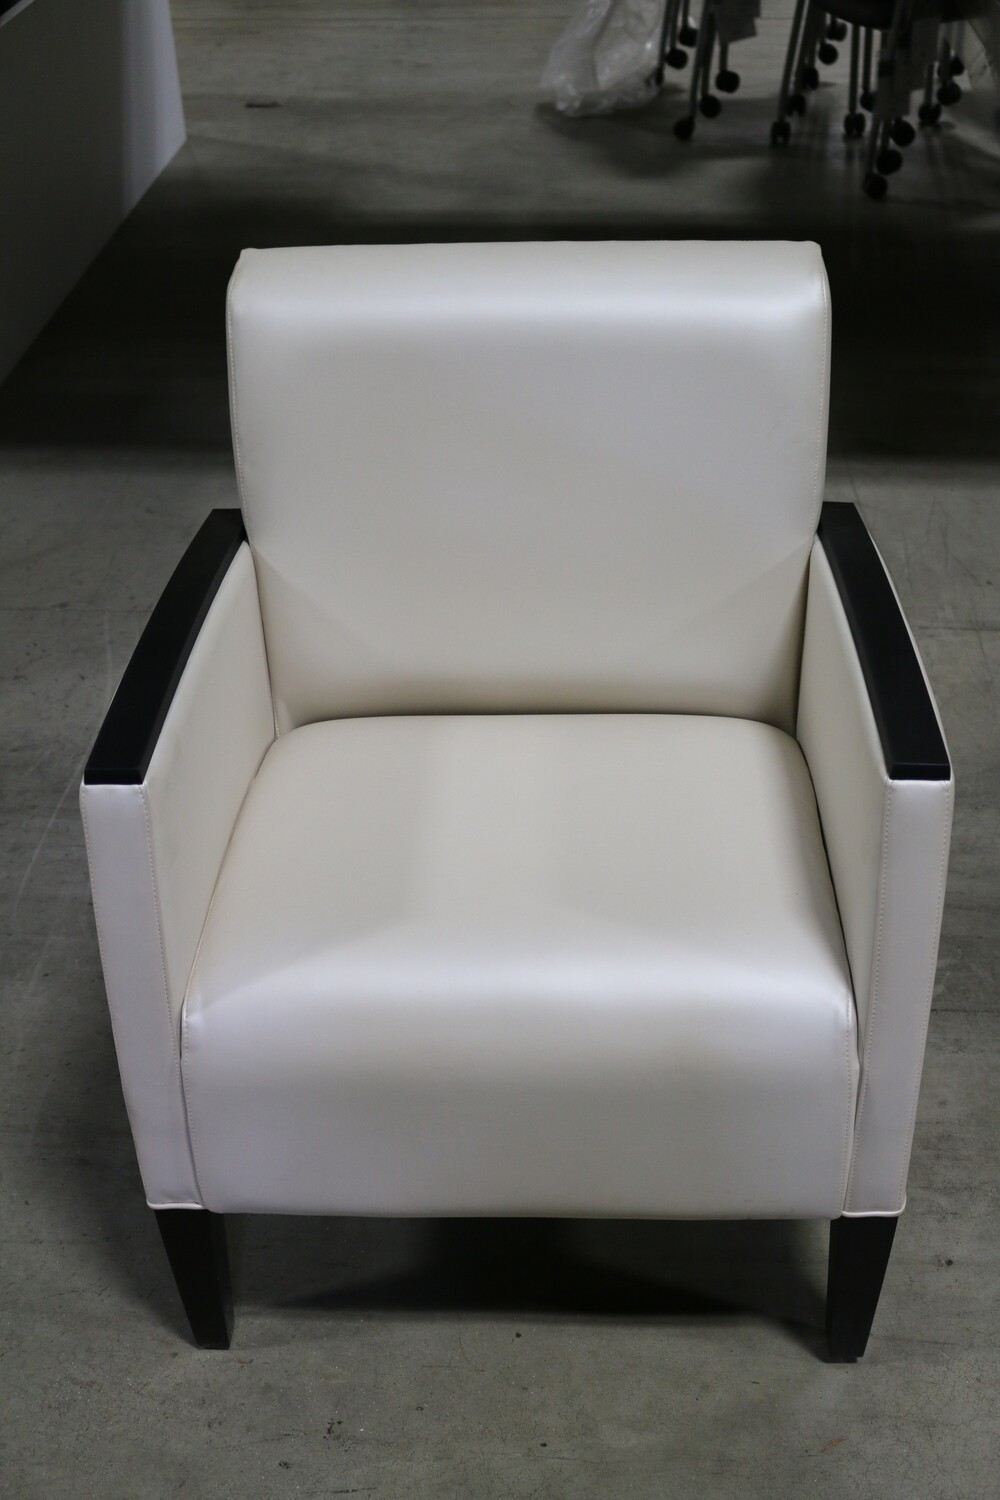 Beo Lounge Chair (On Loan at AAH 09.09.20)